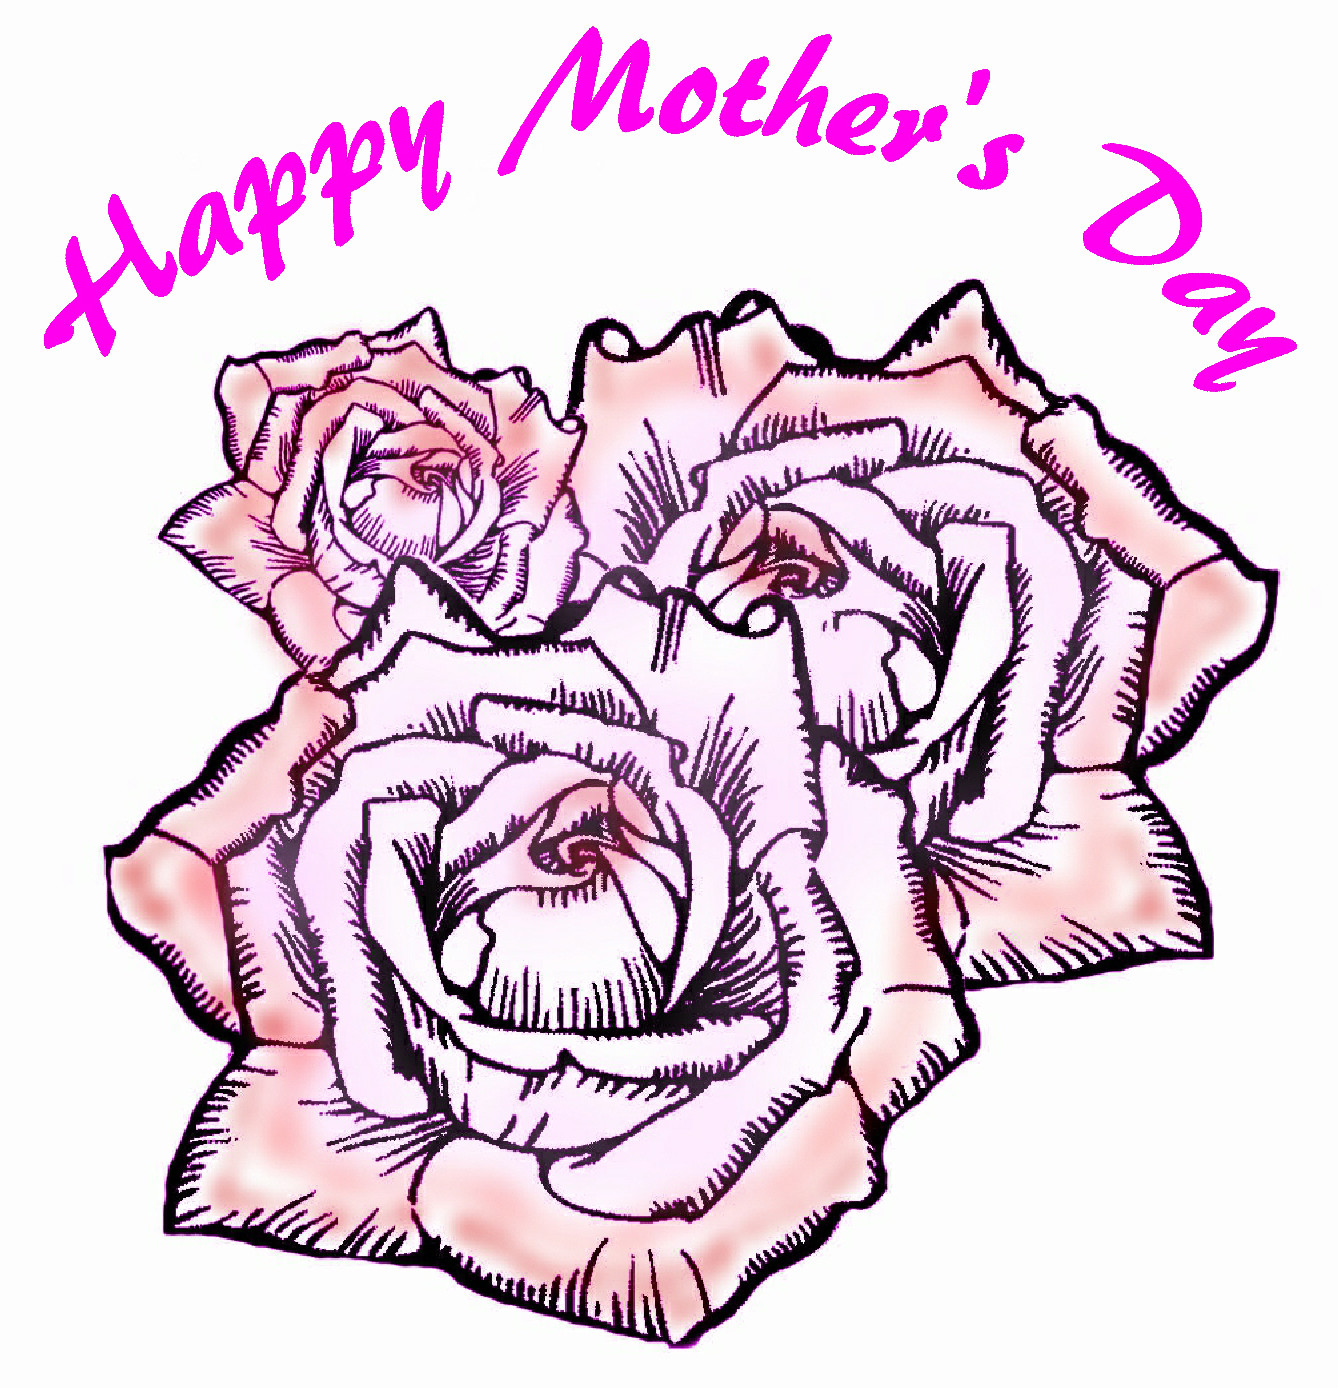 Mother S Day Clipart Black And White.